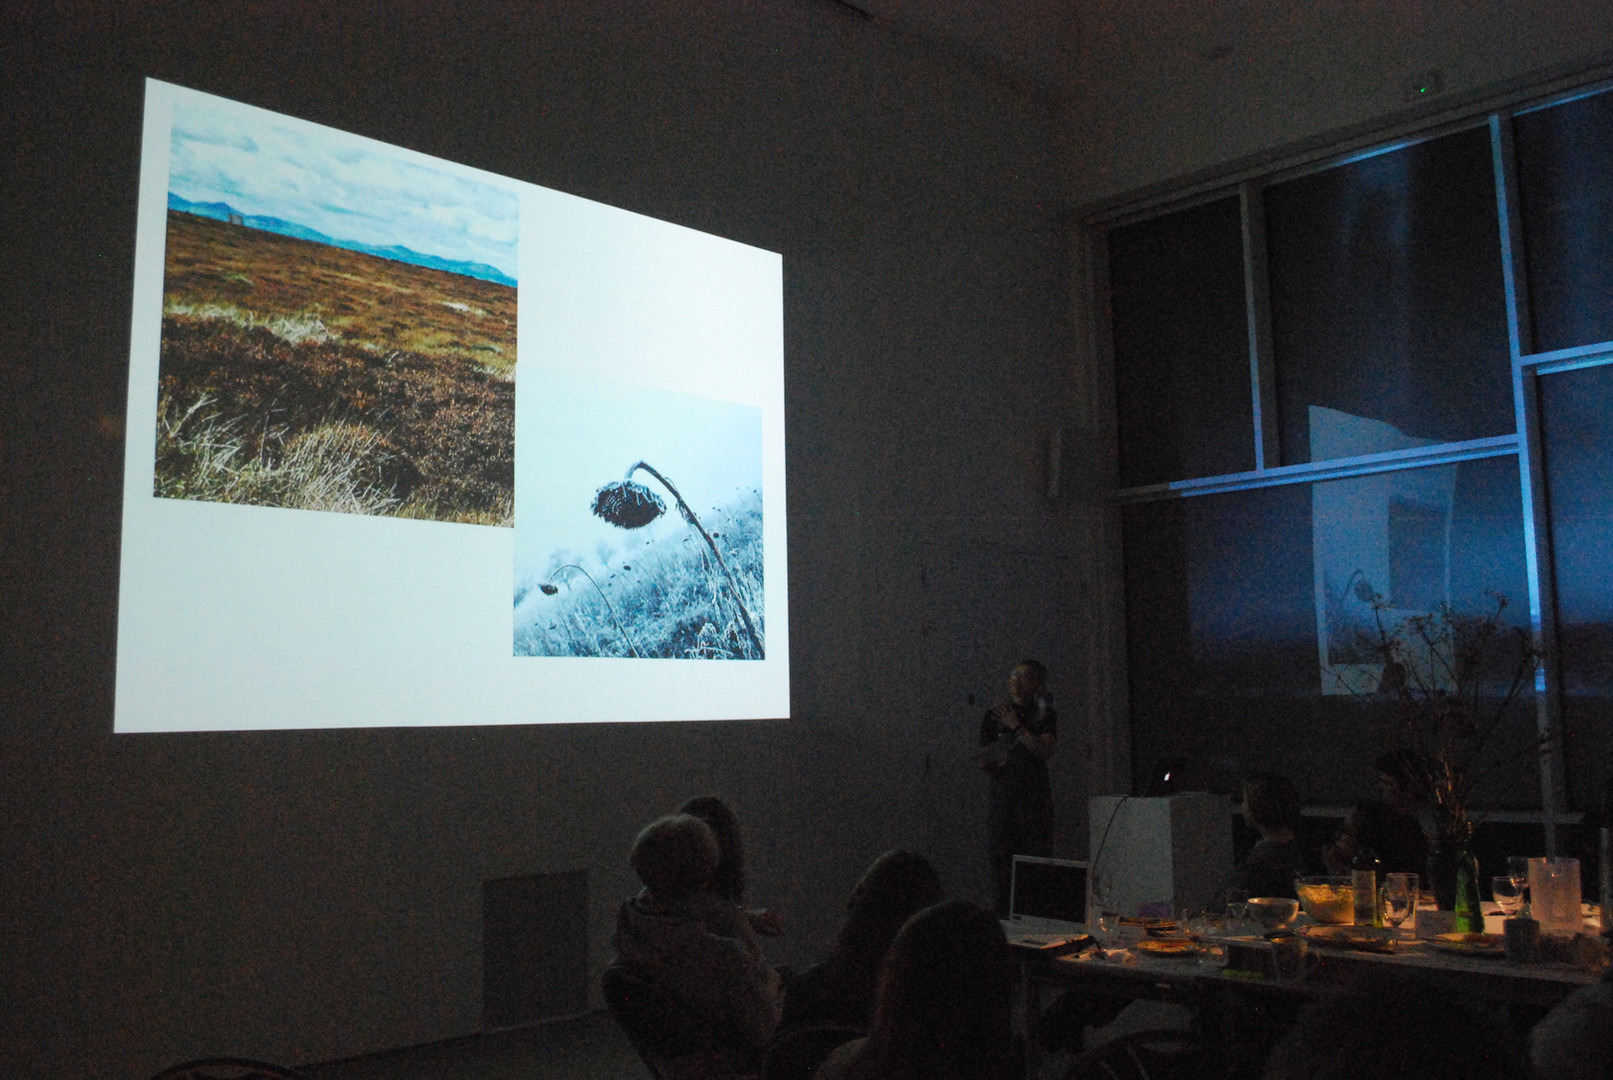 A presentation on language, landscape and the loss of meaning